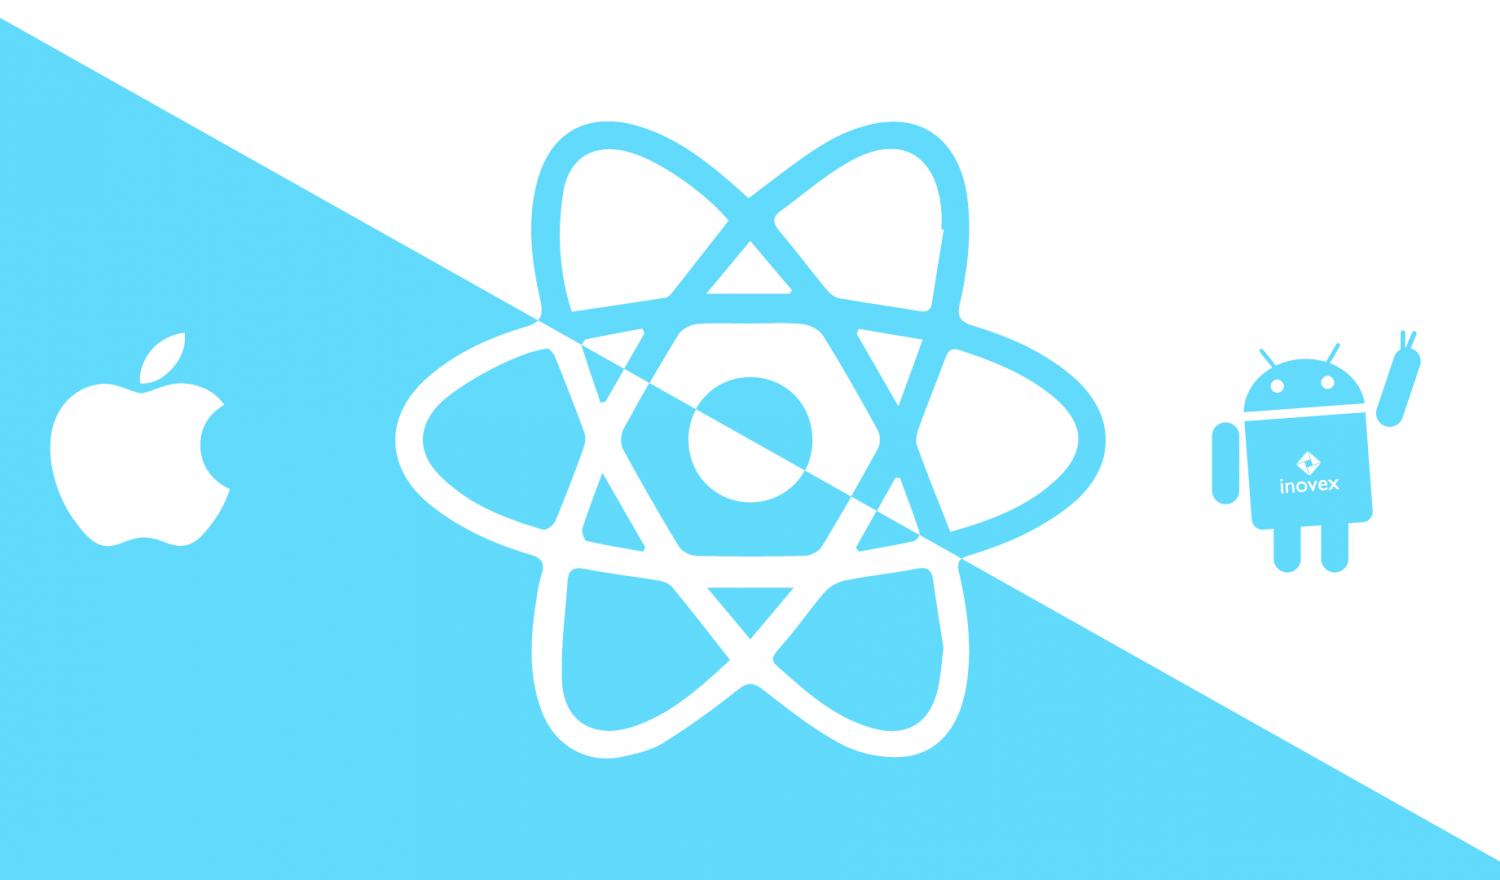 React combining Android and iOS development